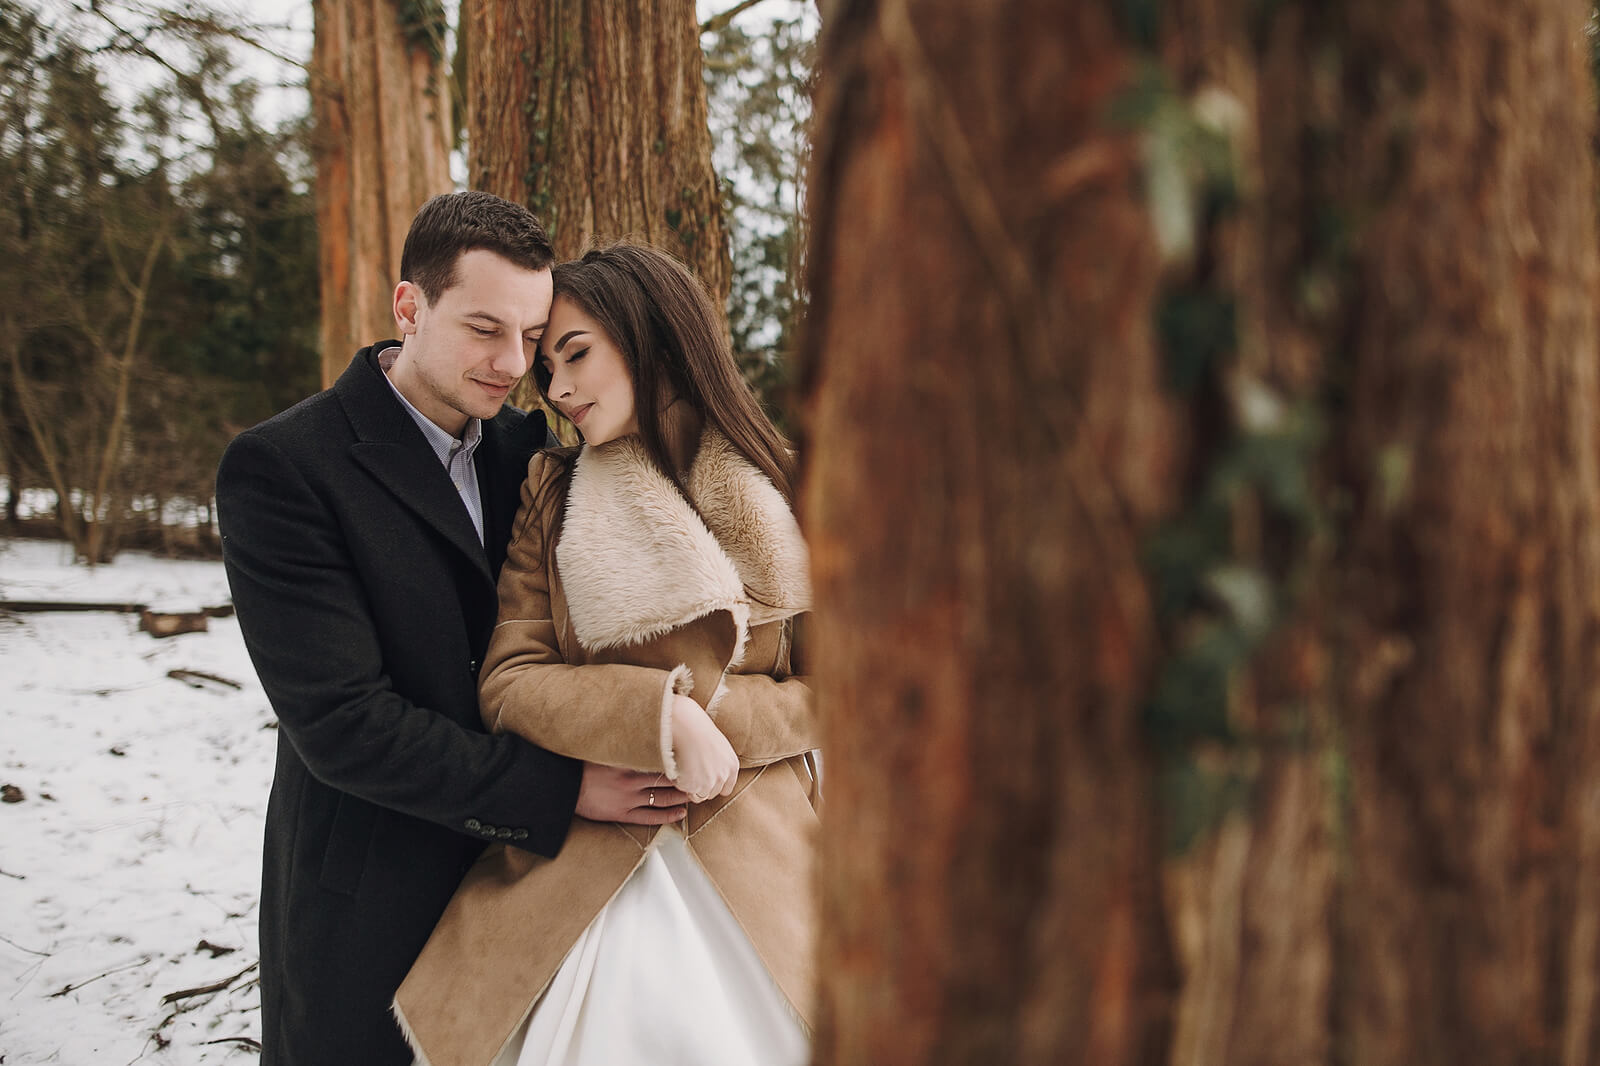 A winter wedding with the bride and groom posing amongst trees in the snow